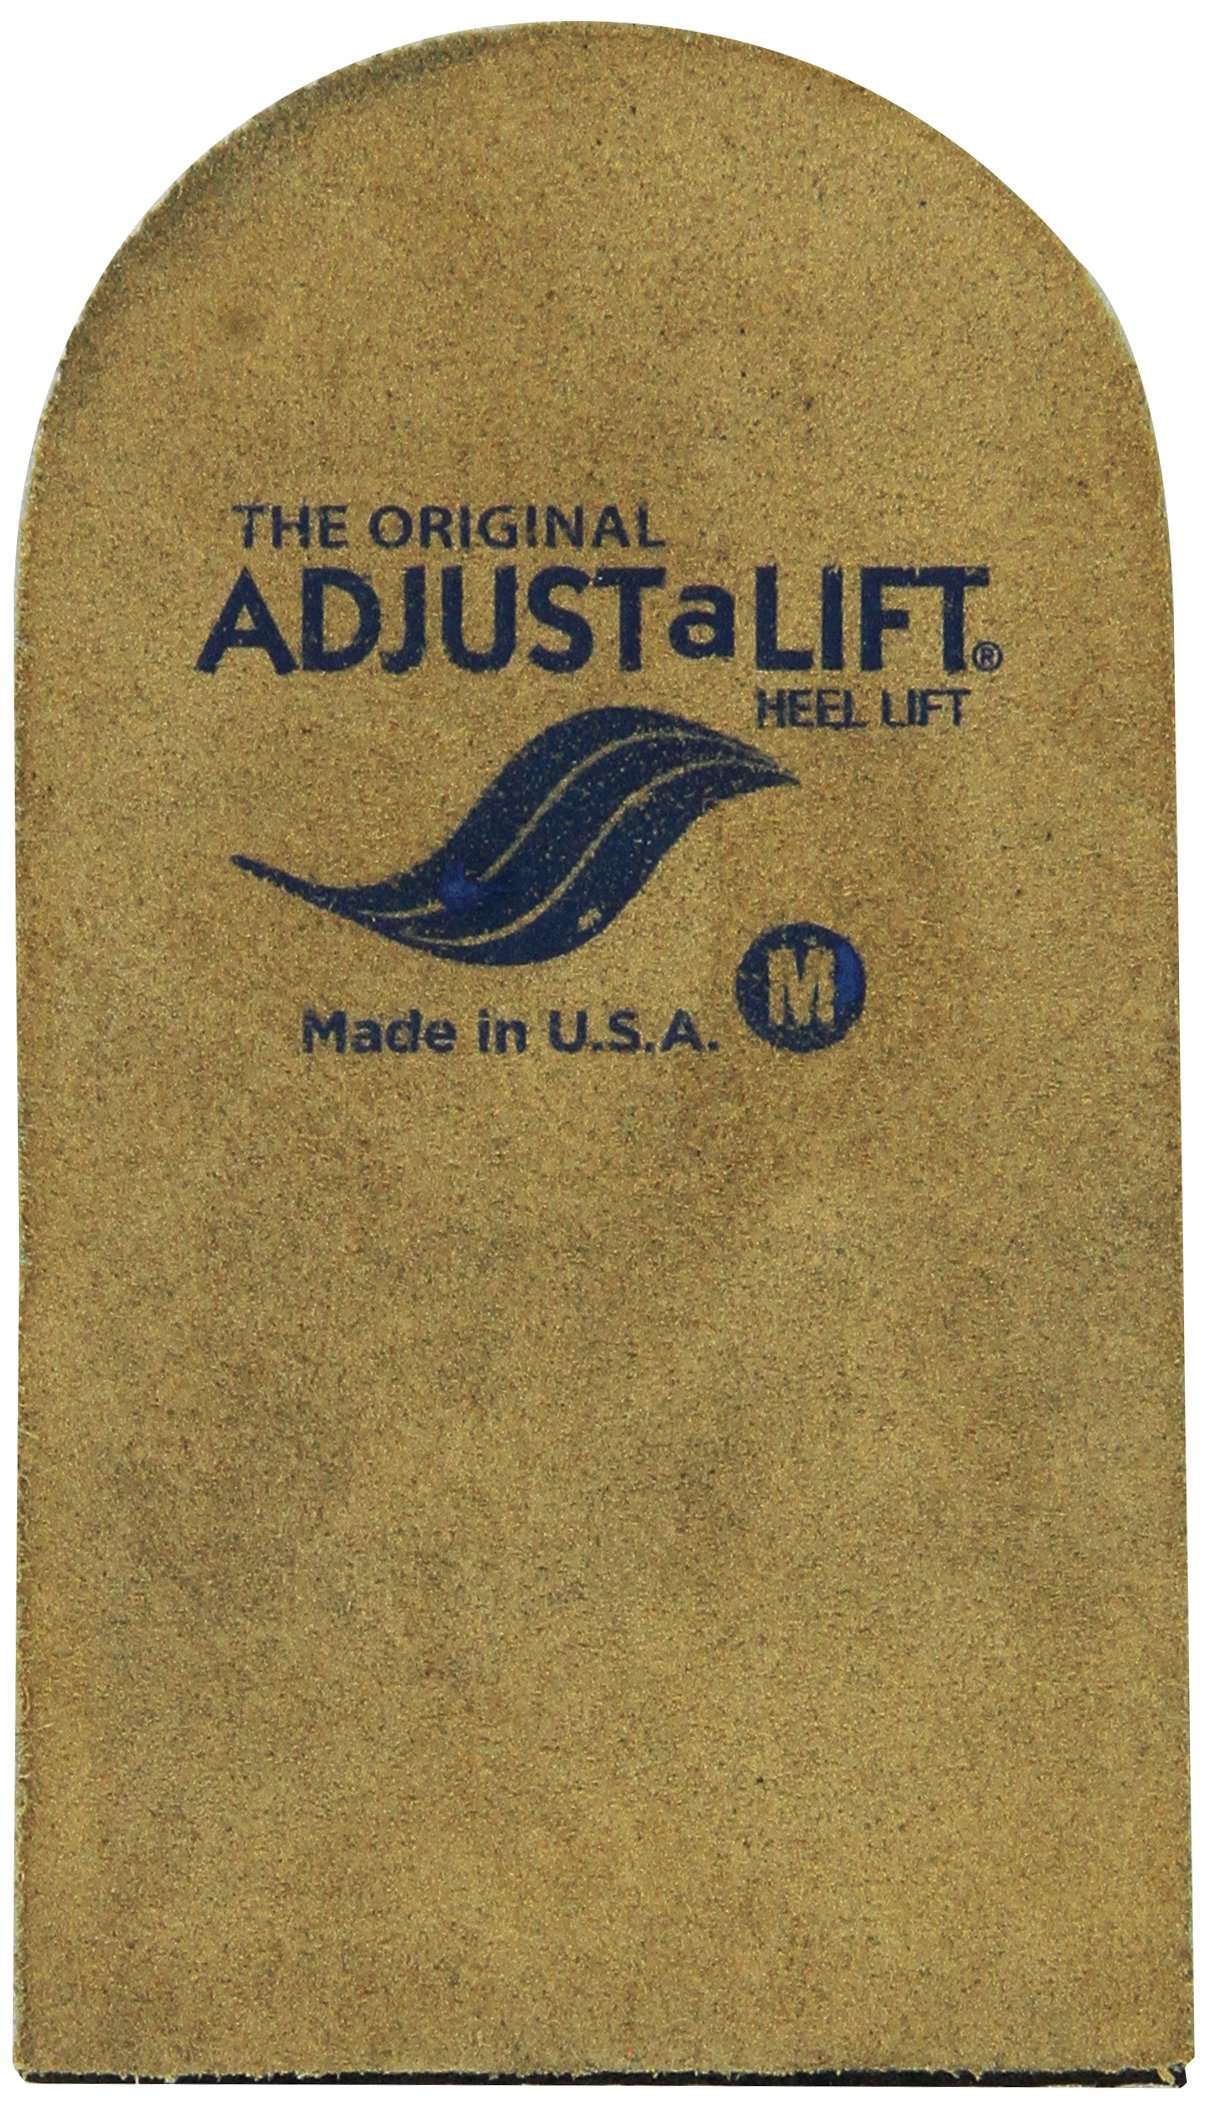 Warwick Enterprises Adjust A Heel Lift, Medium (Pack of 2)